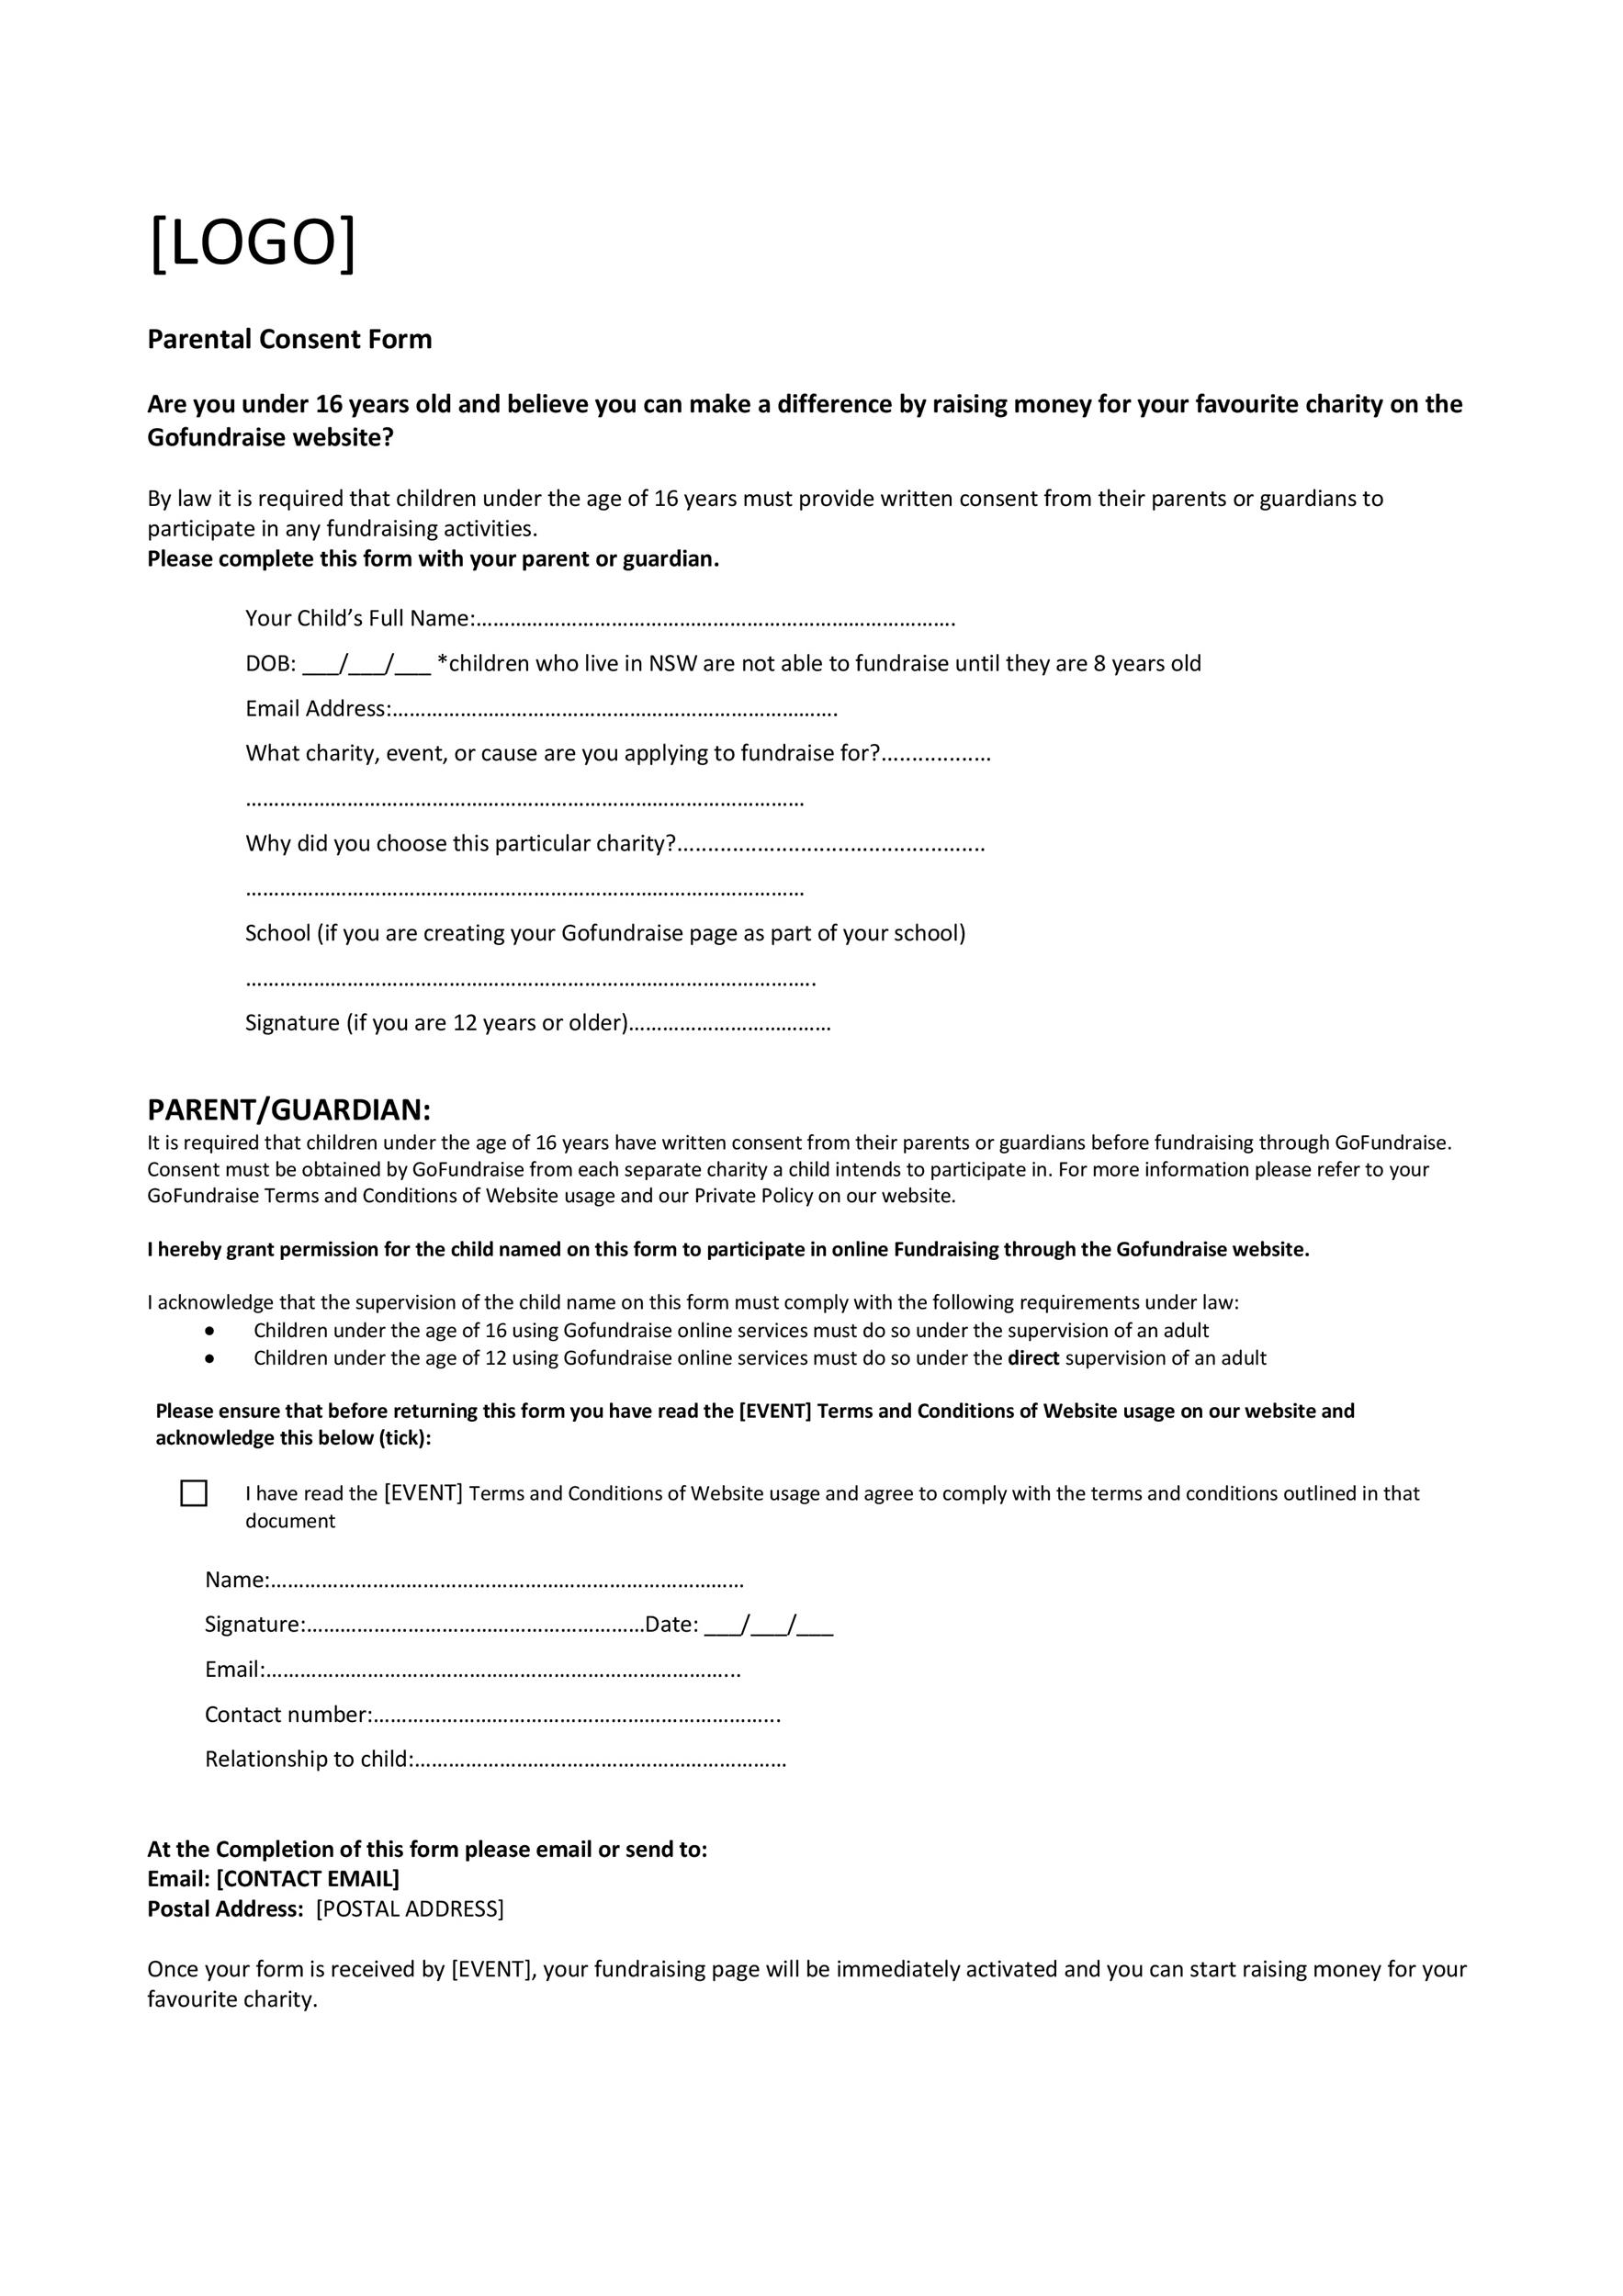 Free parental consent form template 04